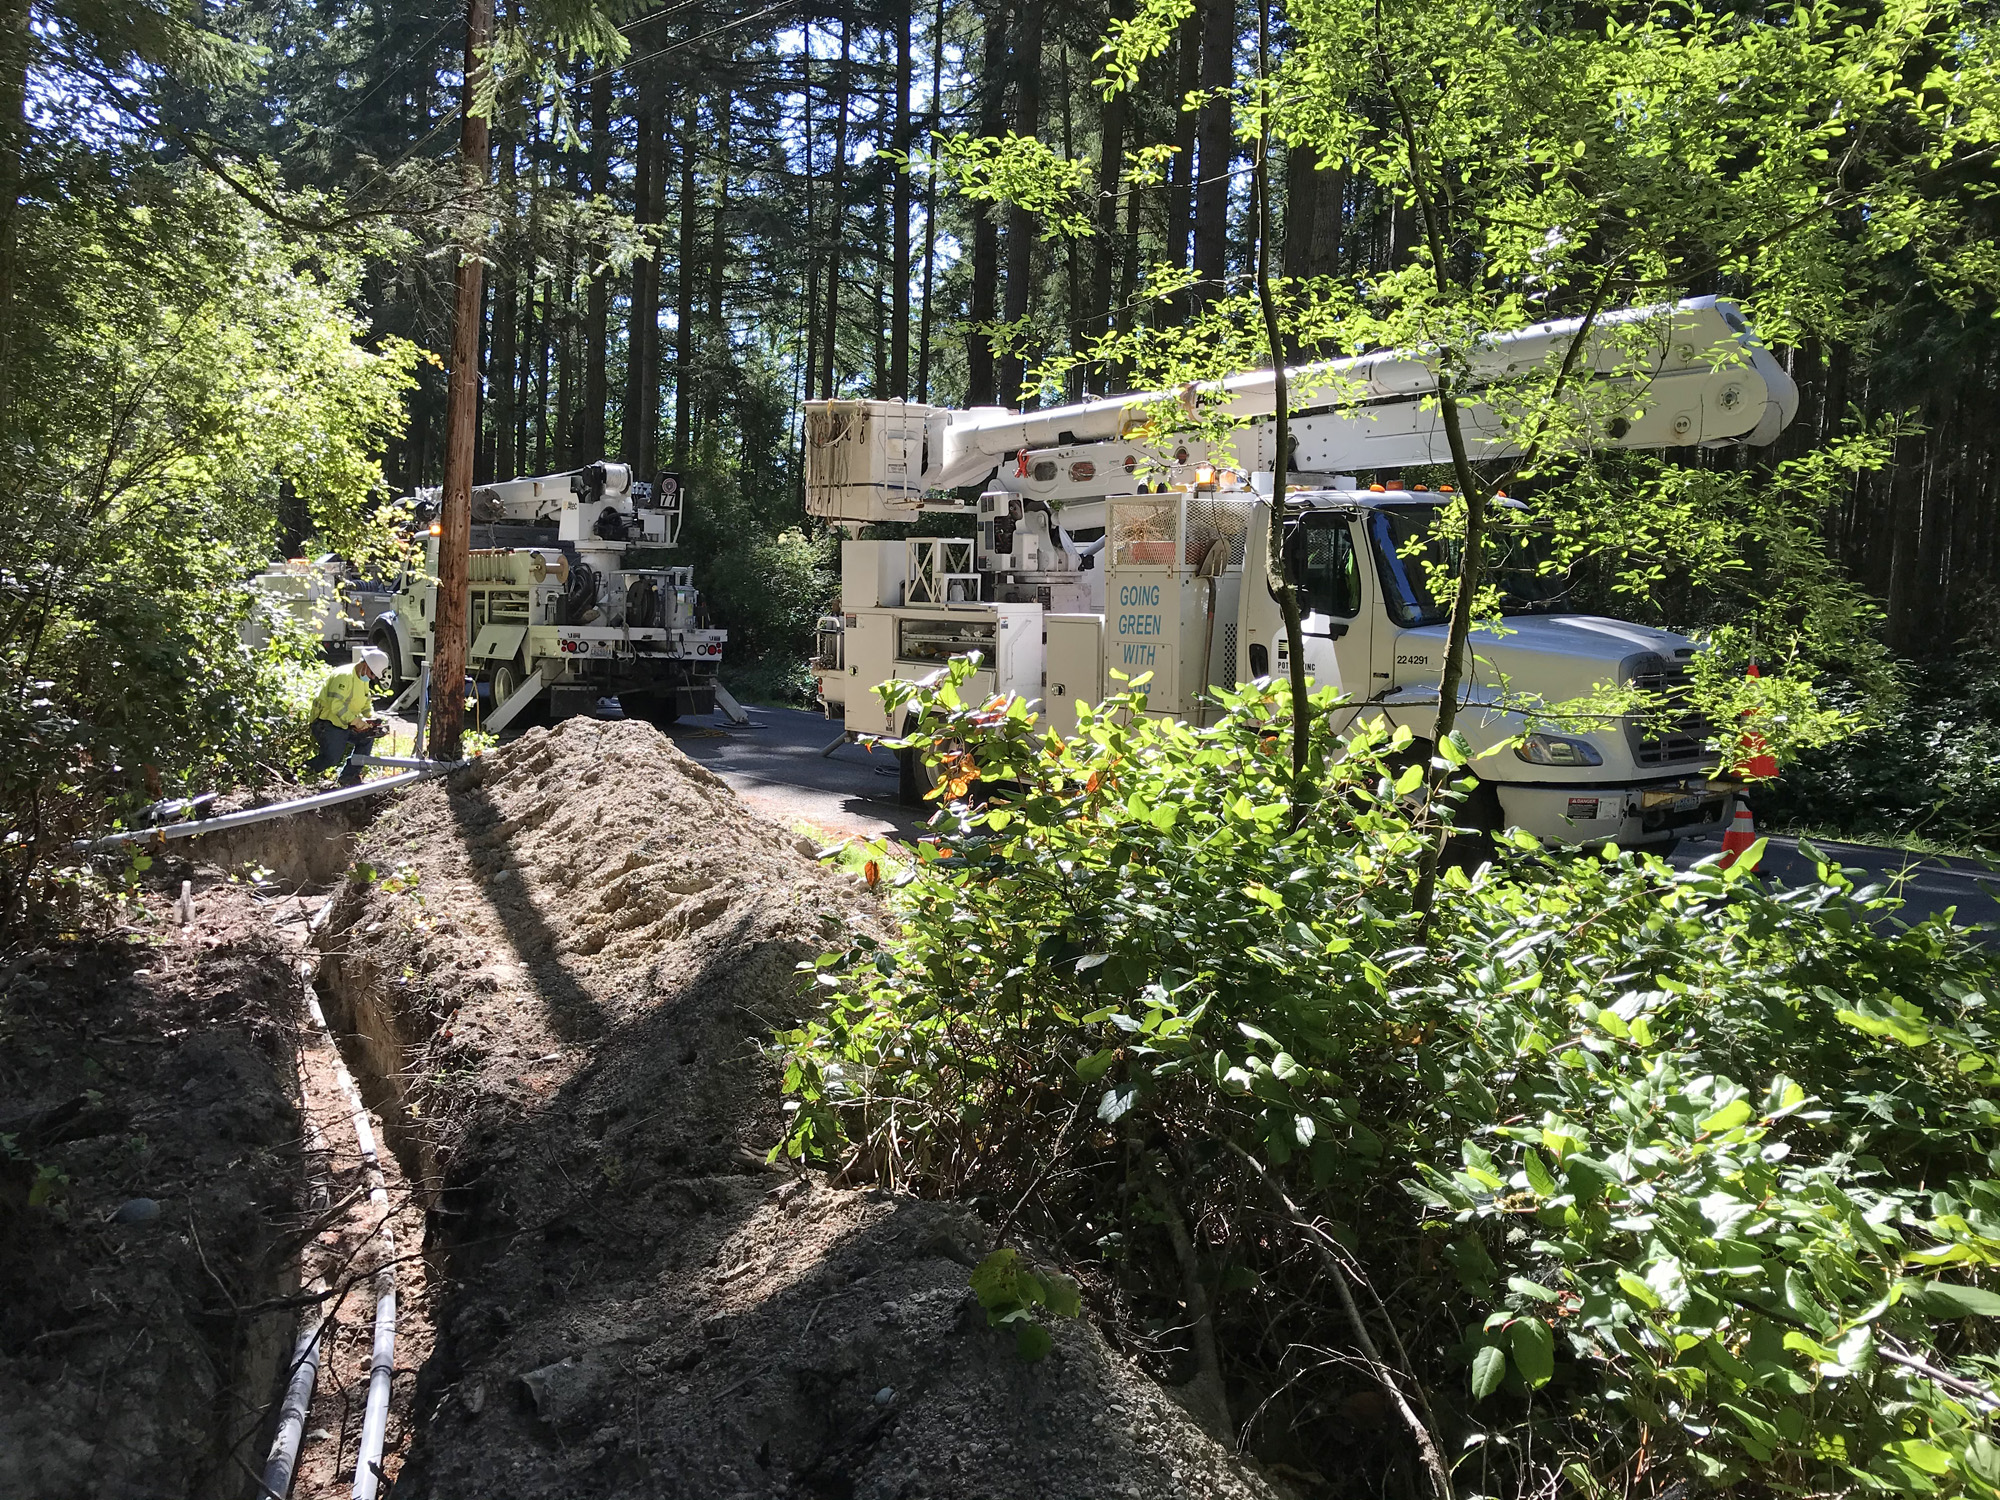 Utilities ditch with conduit by Parker Road with Puget Sound Energy PSE trucks